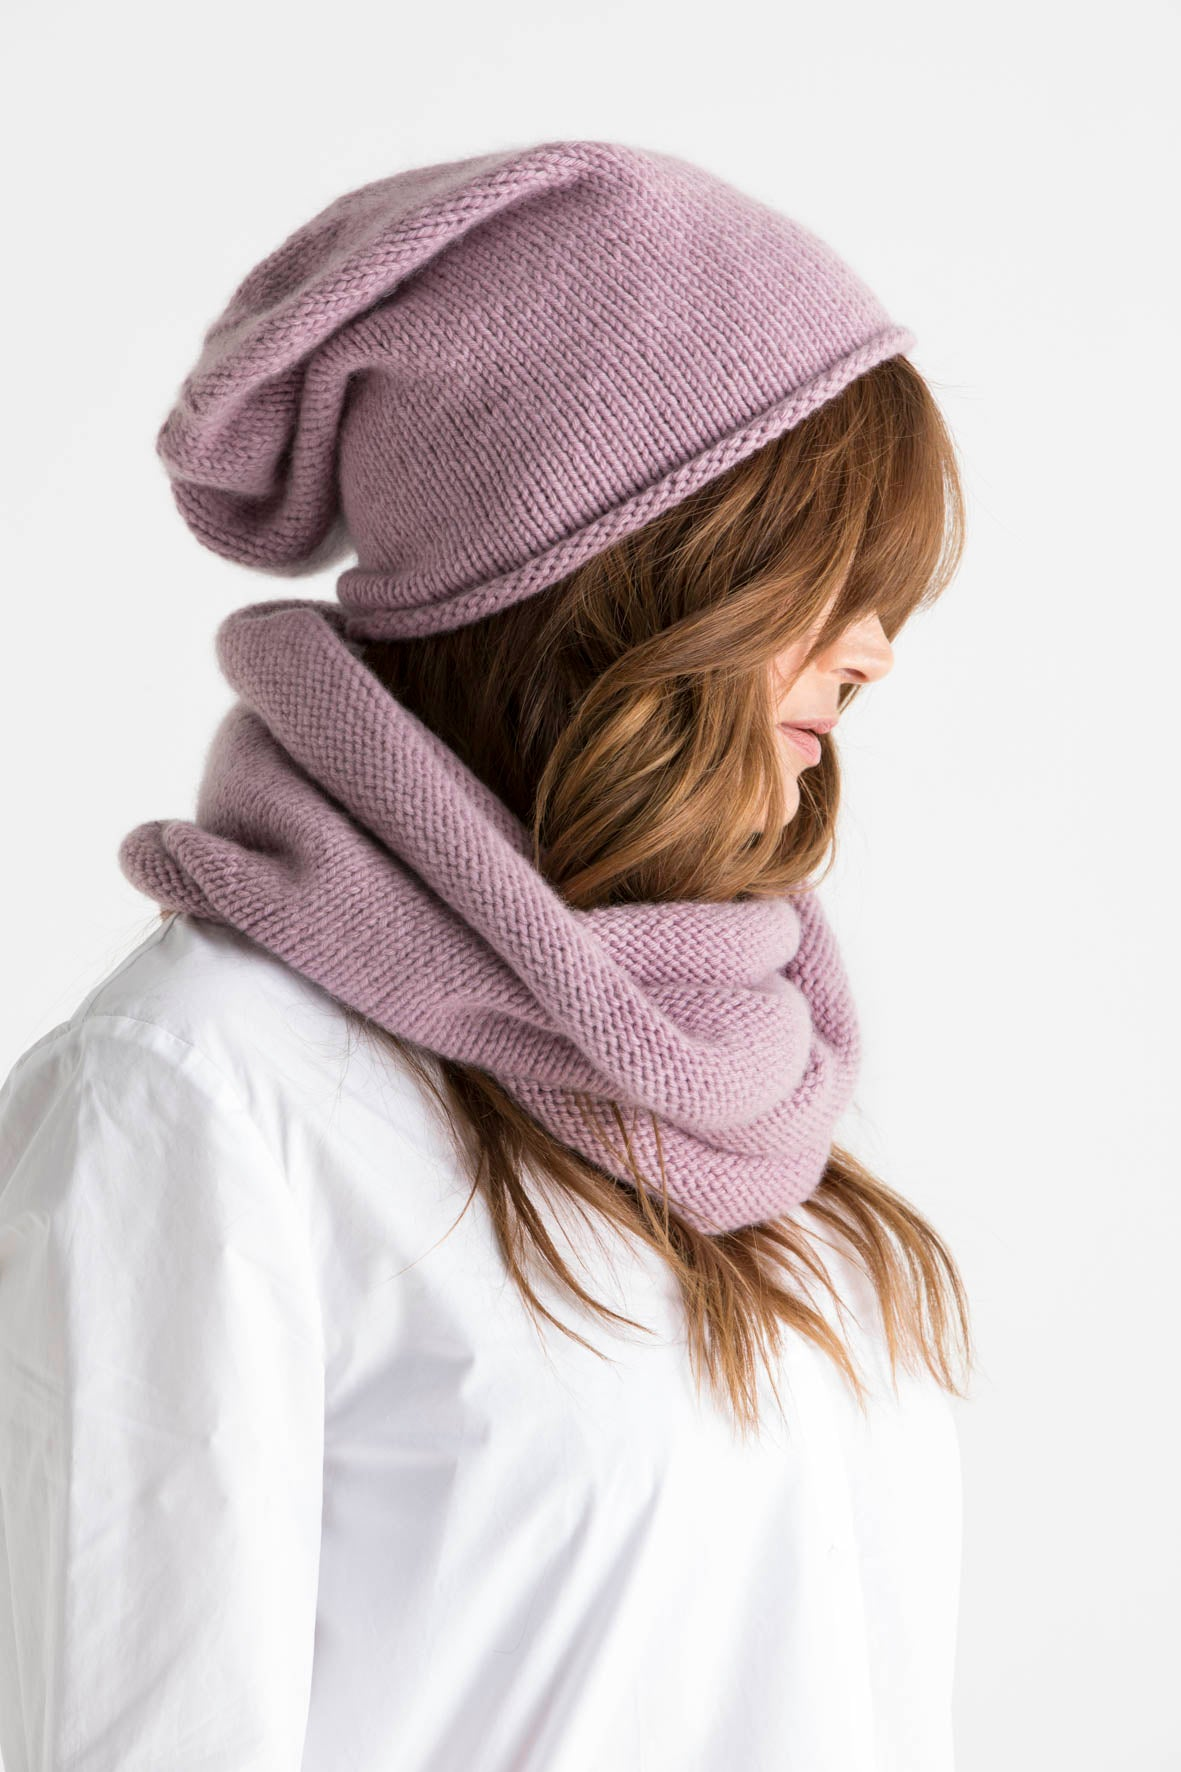 Cashmere Slouchy Hate and Cowl set